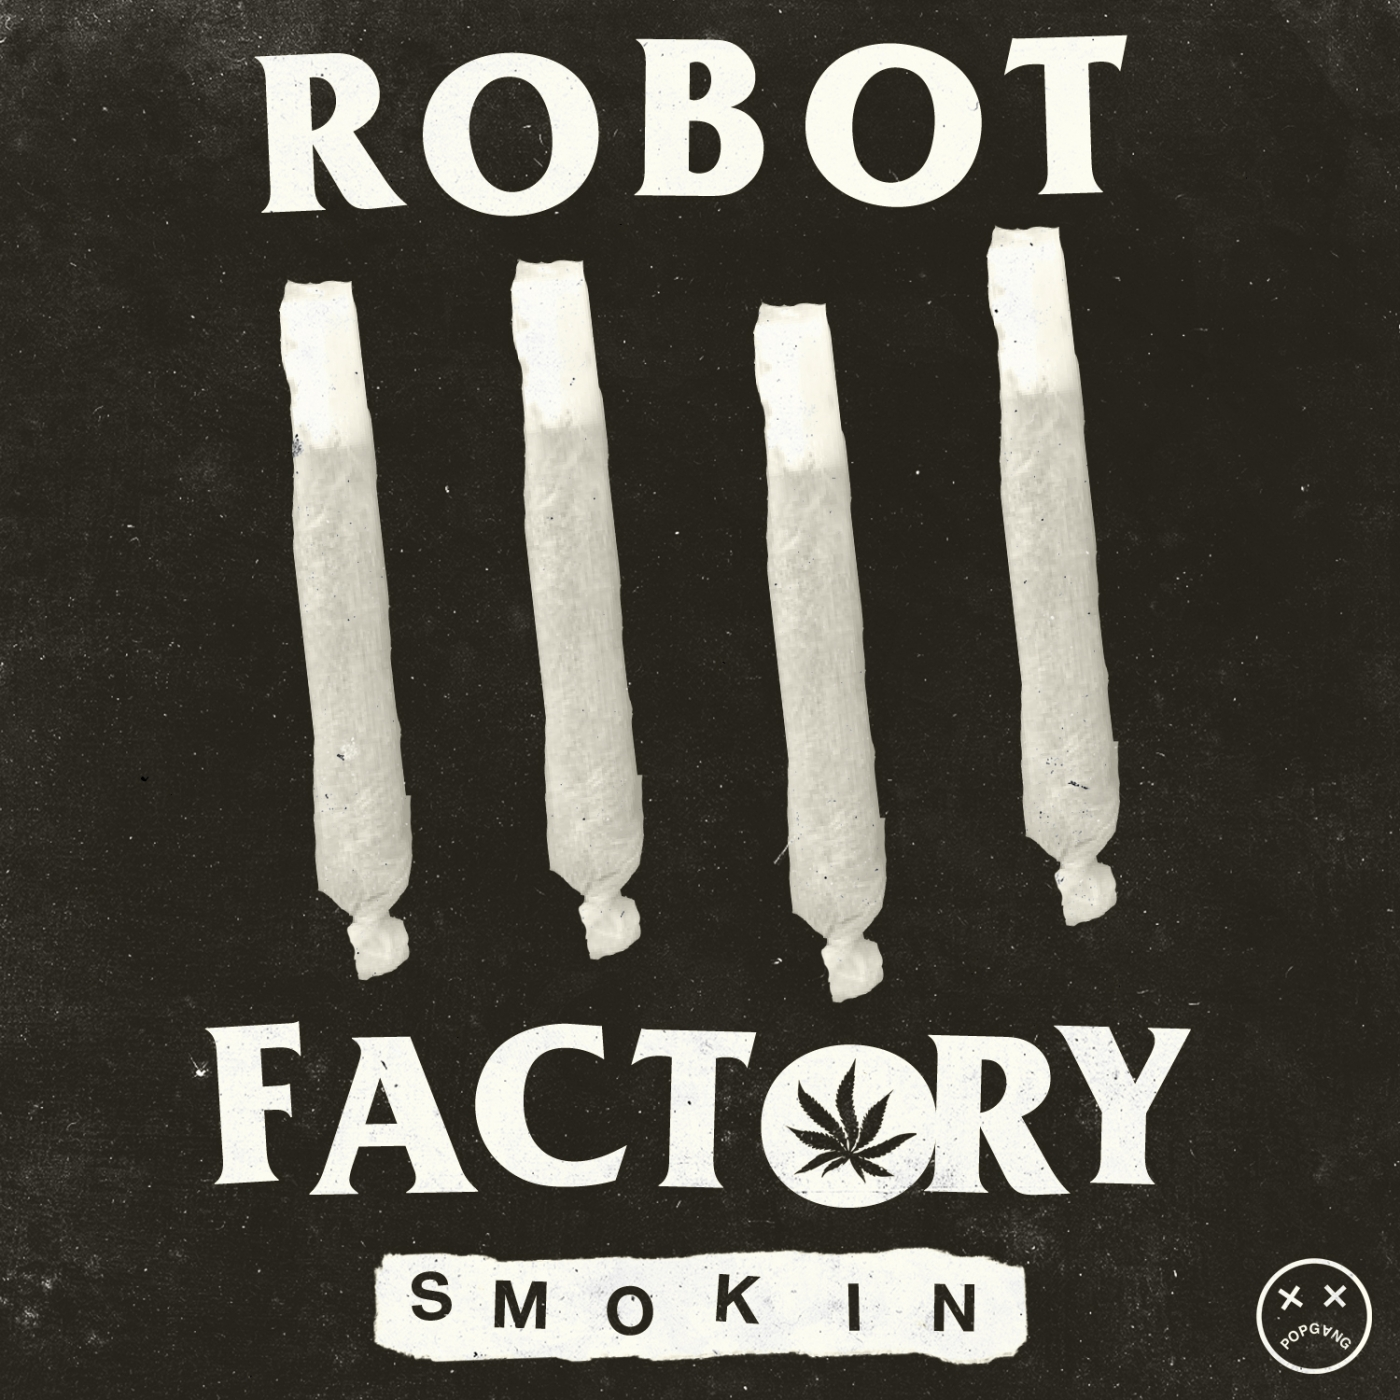 Robot Factory - Smokin'